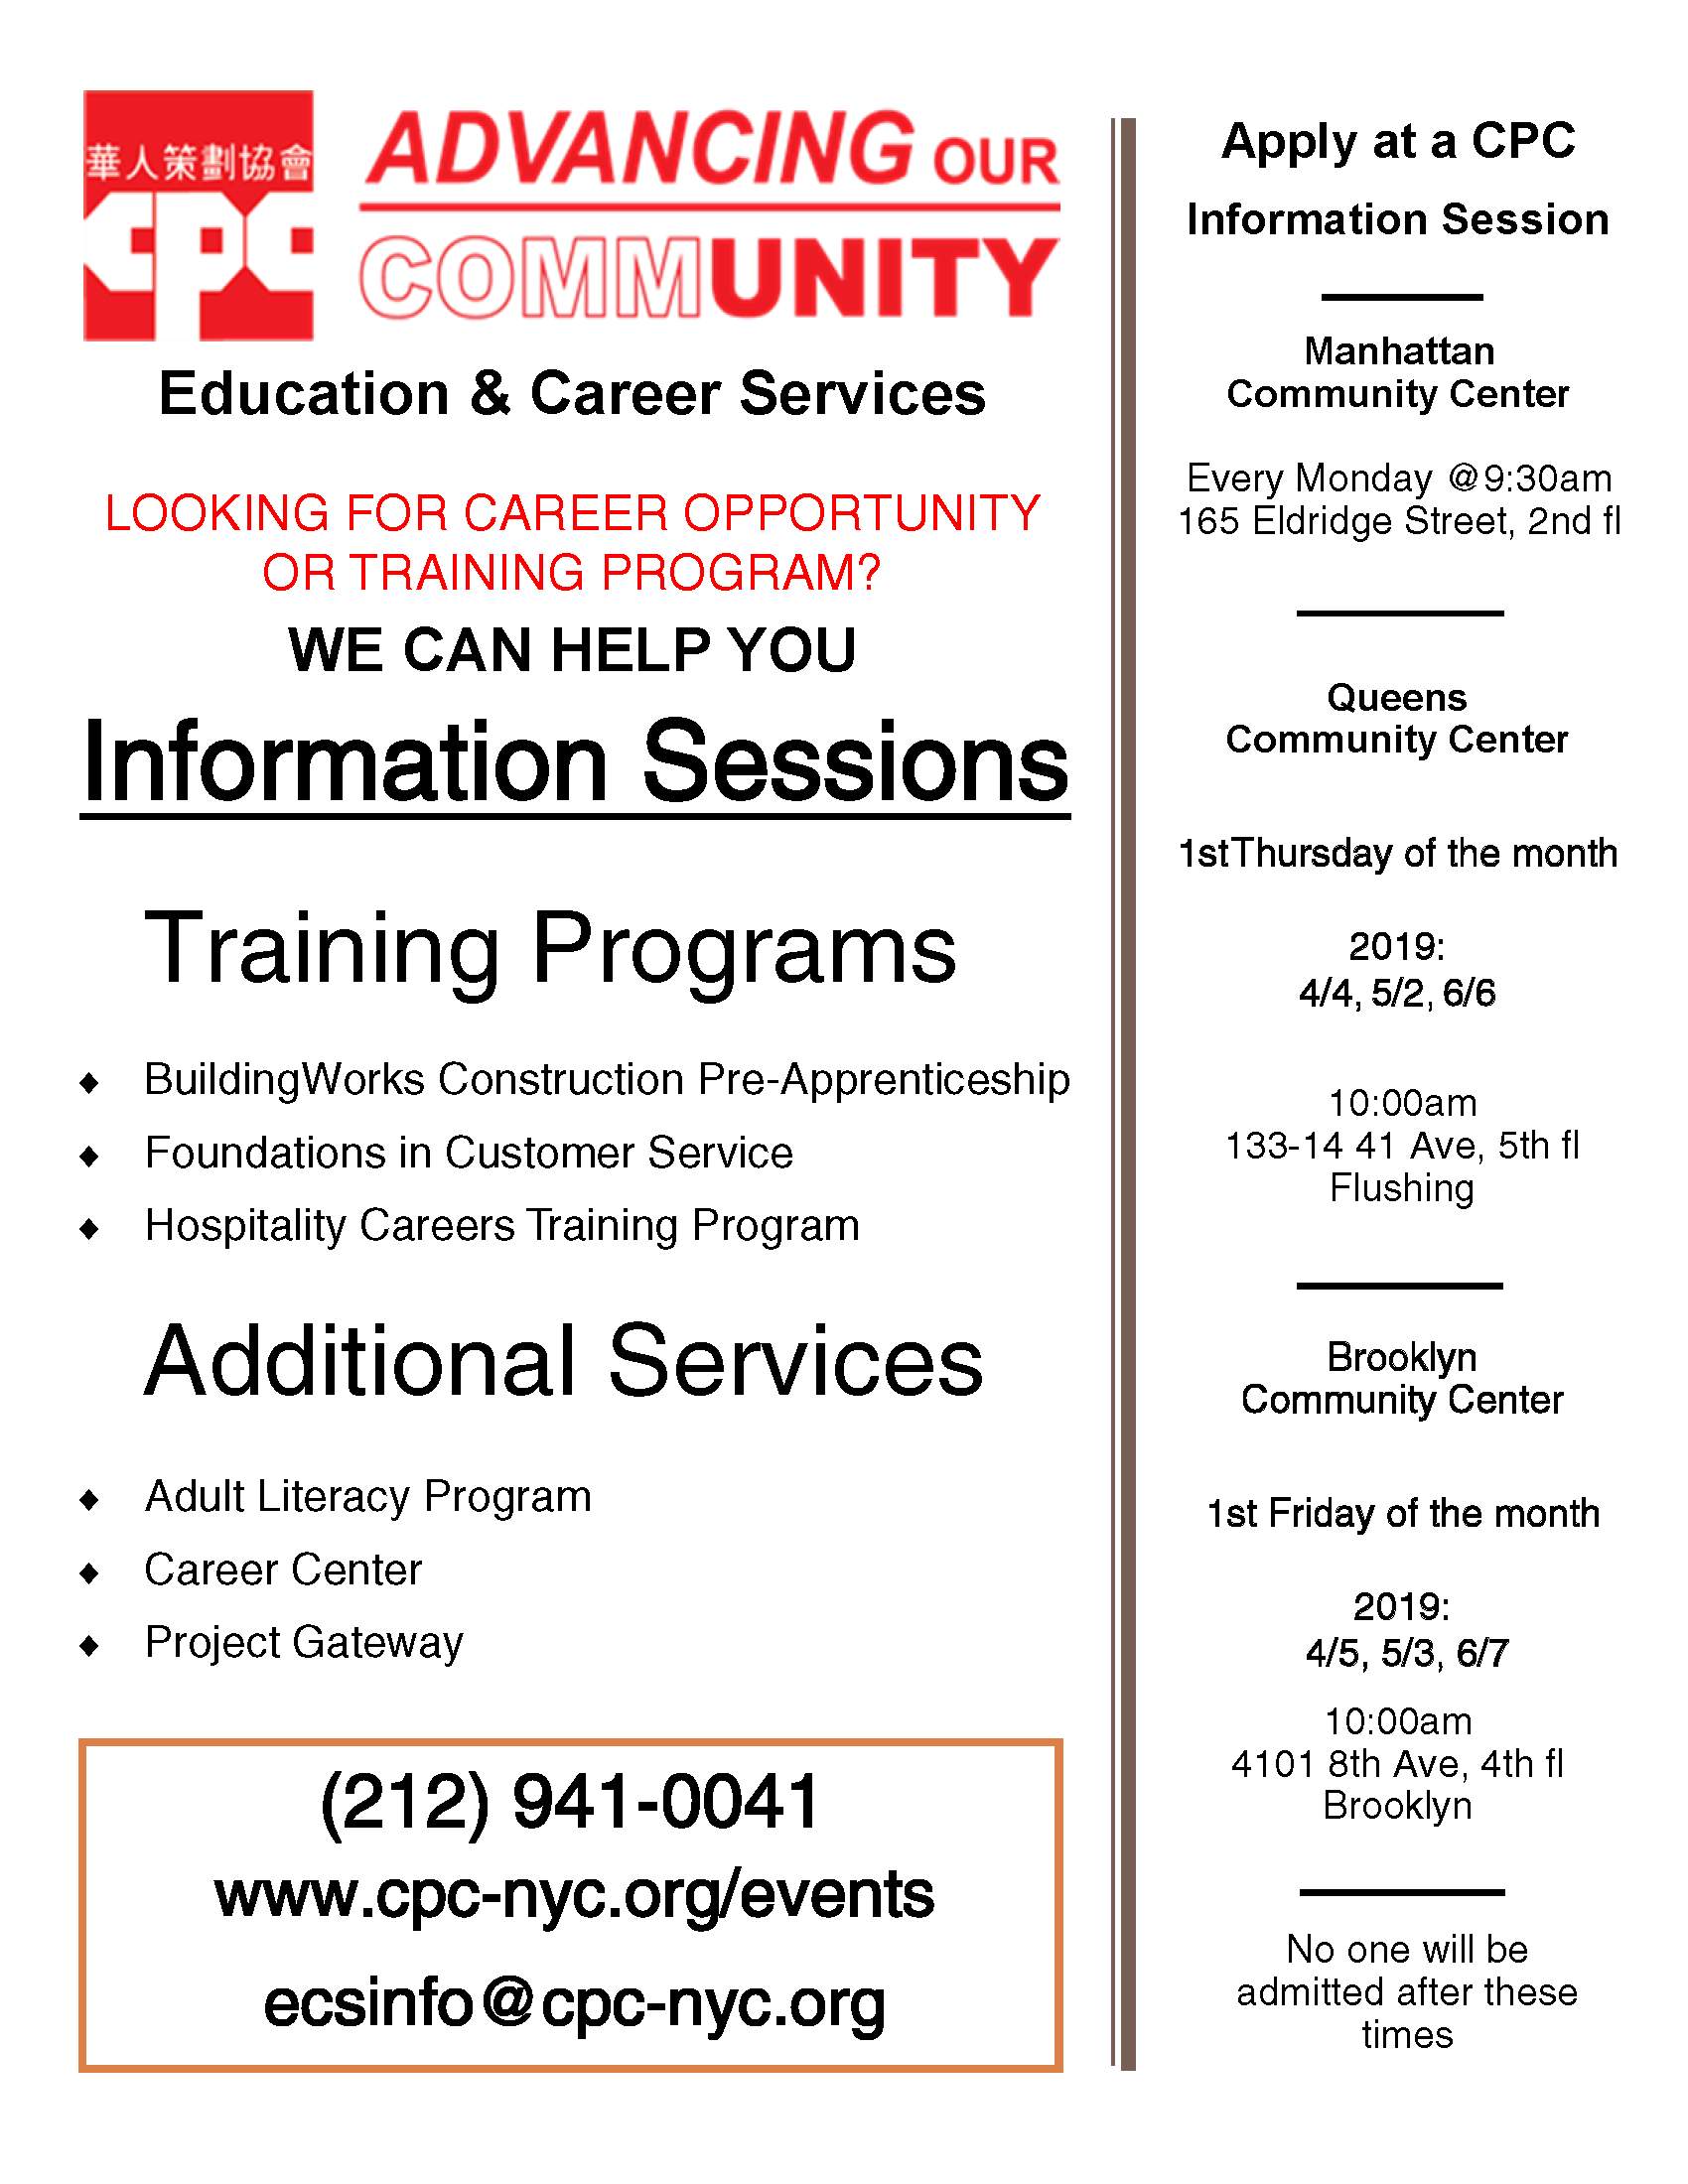 4/4: Workforce Training Programs - Information Session